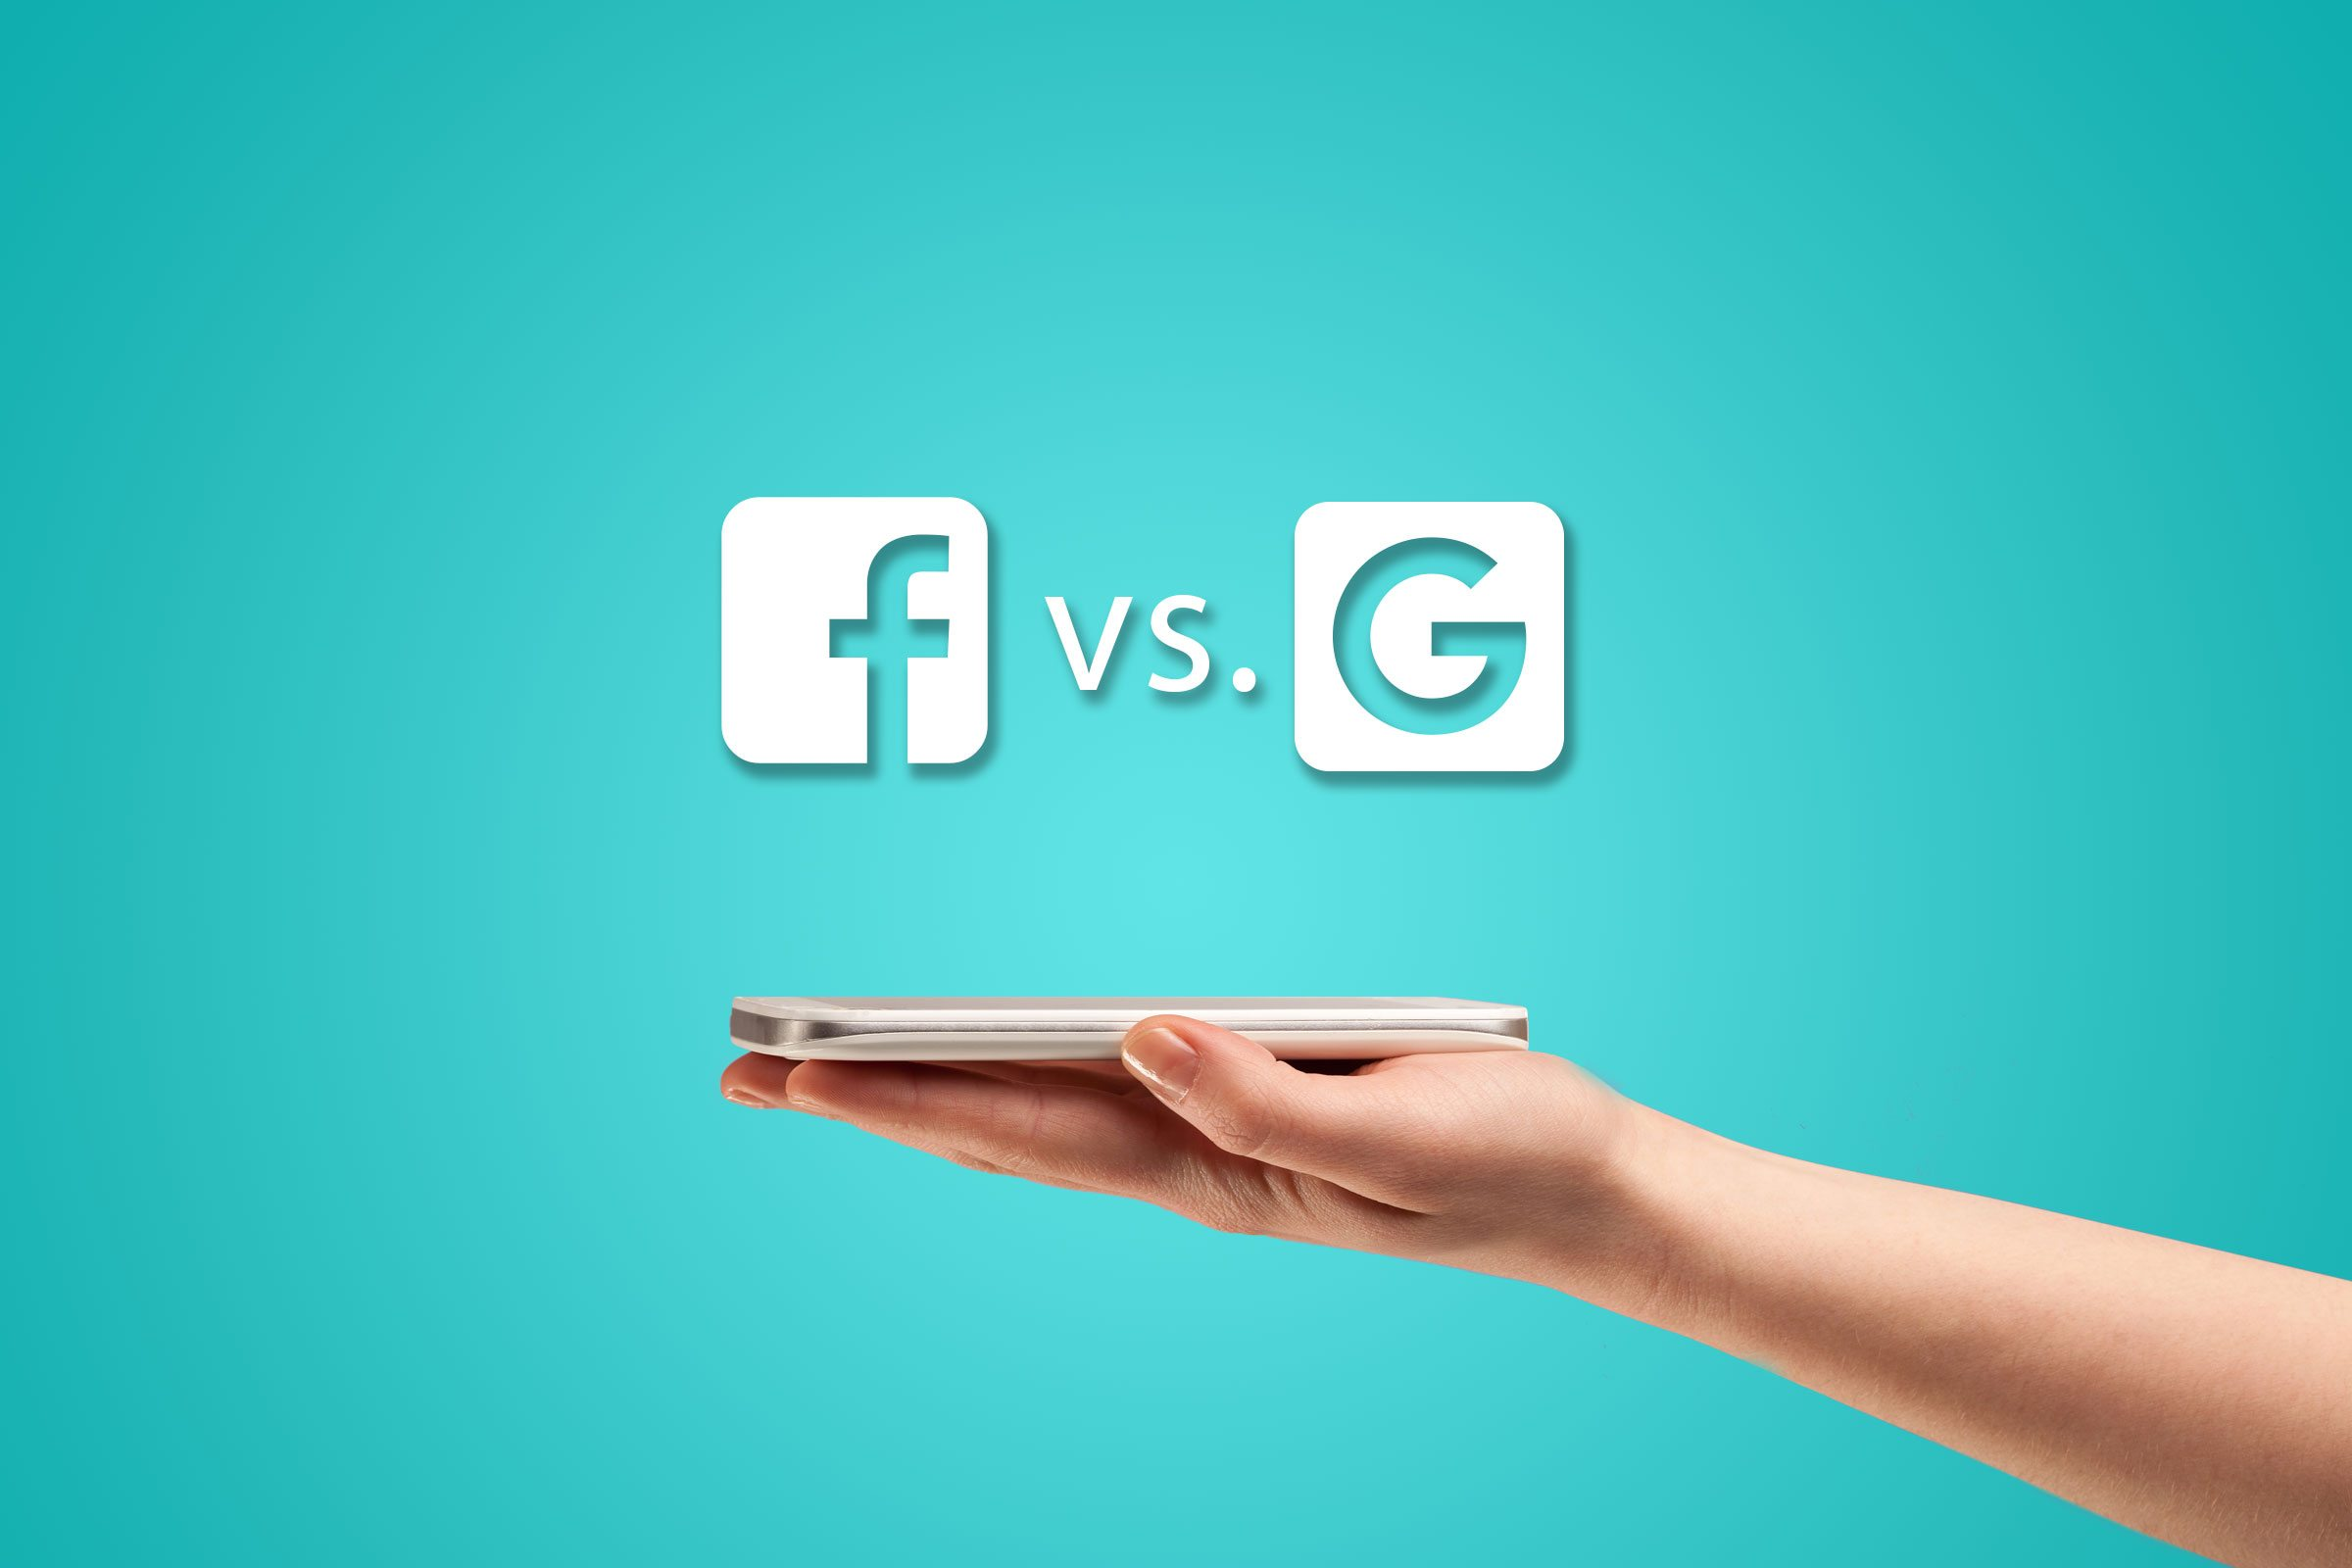 facebook vs google - Facebook vs Google (Adwords): Which one is Best for your Business